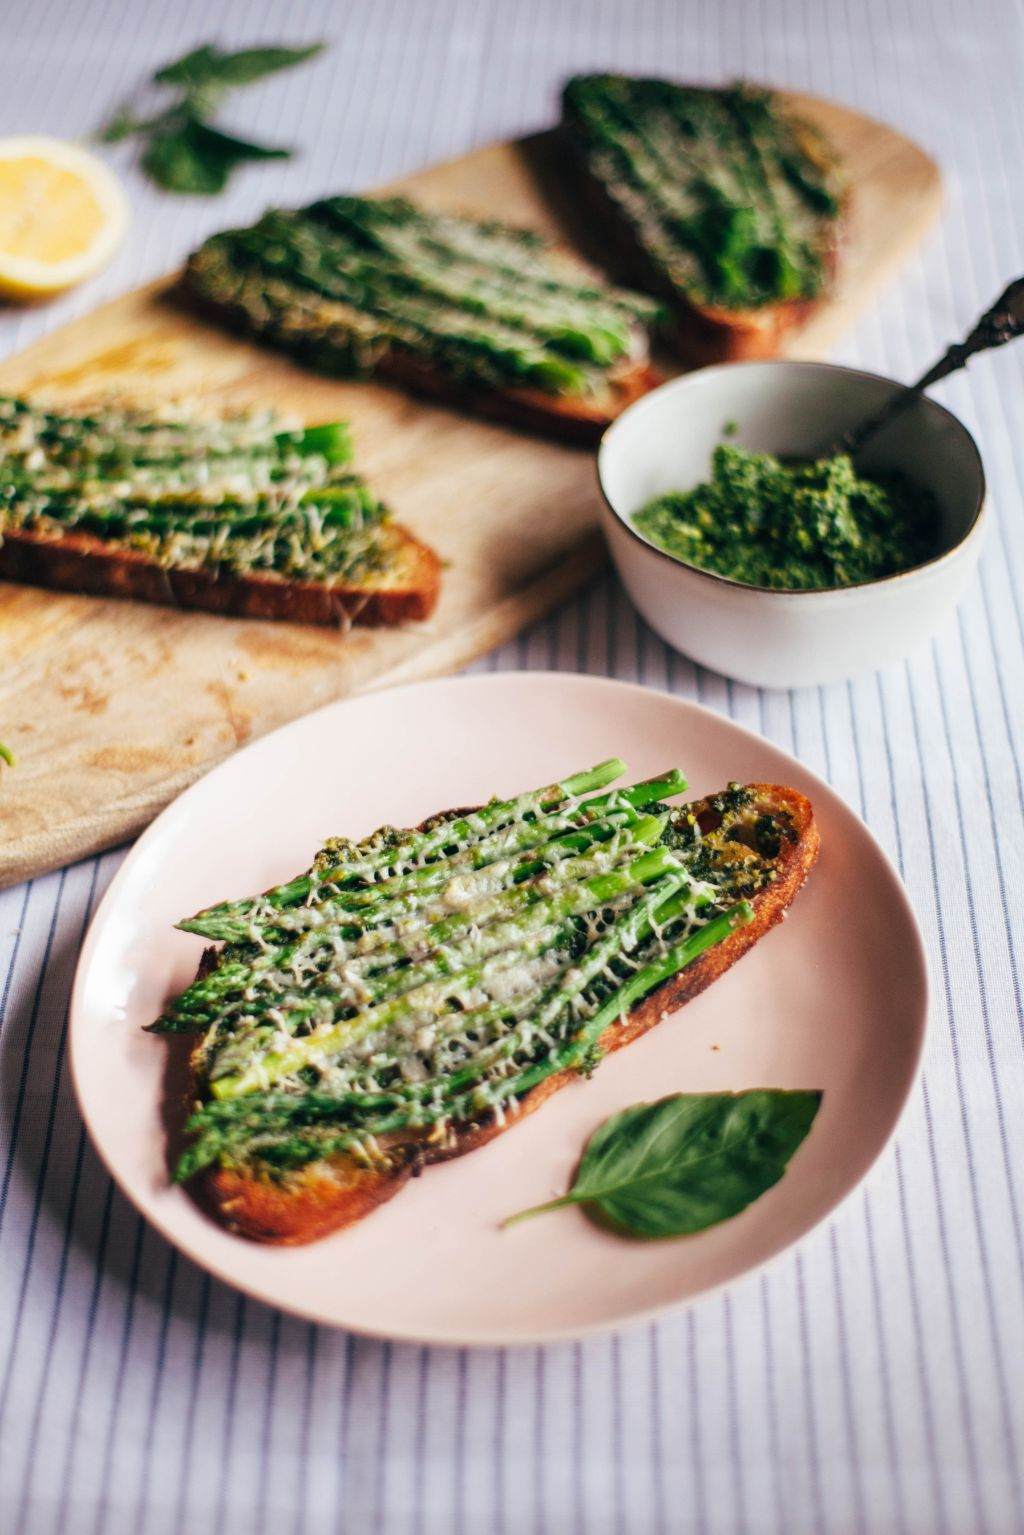 Asparagus Tartine with Kale Walnut Pesto - Tastemaker Blog